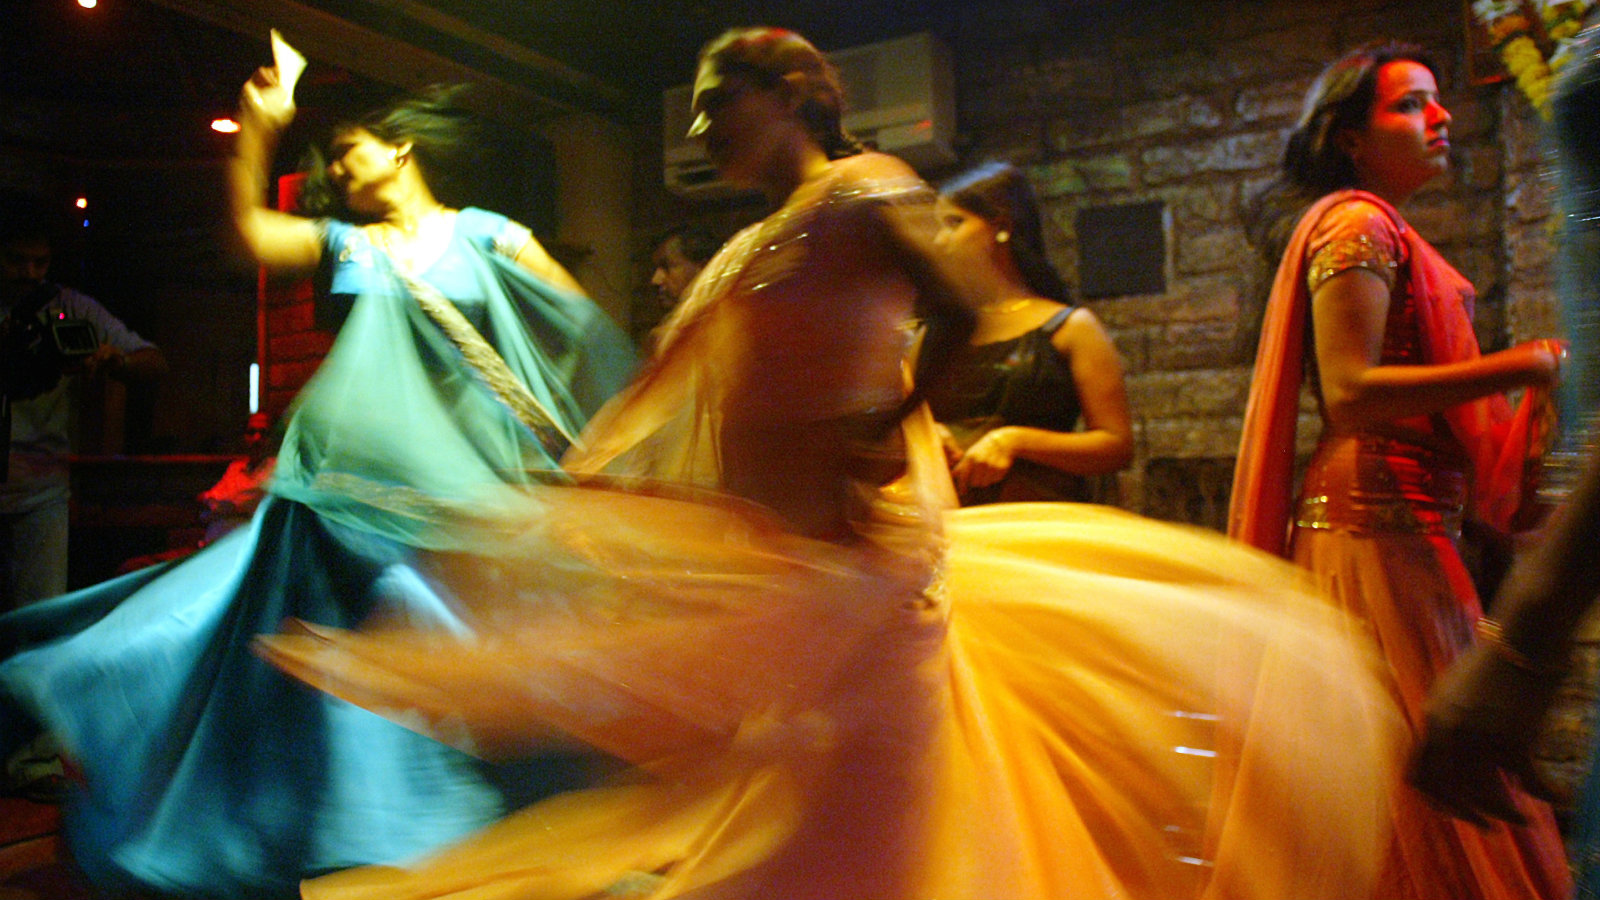 """Indian bar girls perform at a dance bar in Bombay May 5, 2005. The government of the western Indian state of Maharashtra on Wednesday endorsed the decree seeking to ban dance bars in the state. There are more than 600 dance bars in Bombay itself and the closure of cabarets is likely to render jobless more than 150,000 people across the state including dancers, waiters, bouncers and security guards. Most Bars in the state employ girls, who dress in colourful costumes and dance to Bollywood songs, as customers shower them with currency bills. According to bar girl's union, majority of the 75,000 girls working in bars will be forced into the """"flesh trade"""" due to the closure. Picture taken on May 5, 2005."""